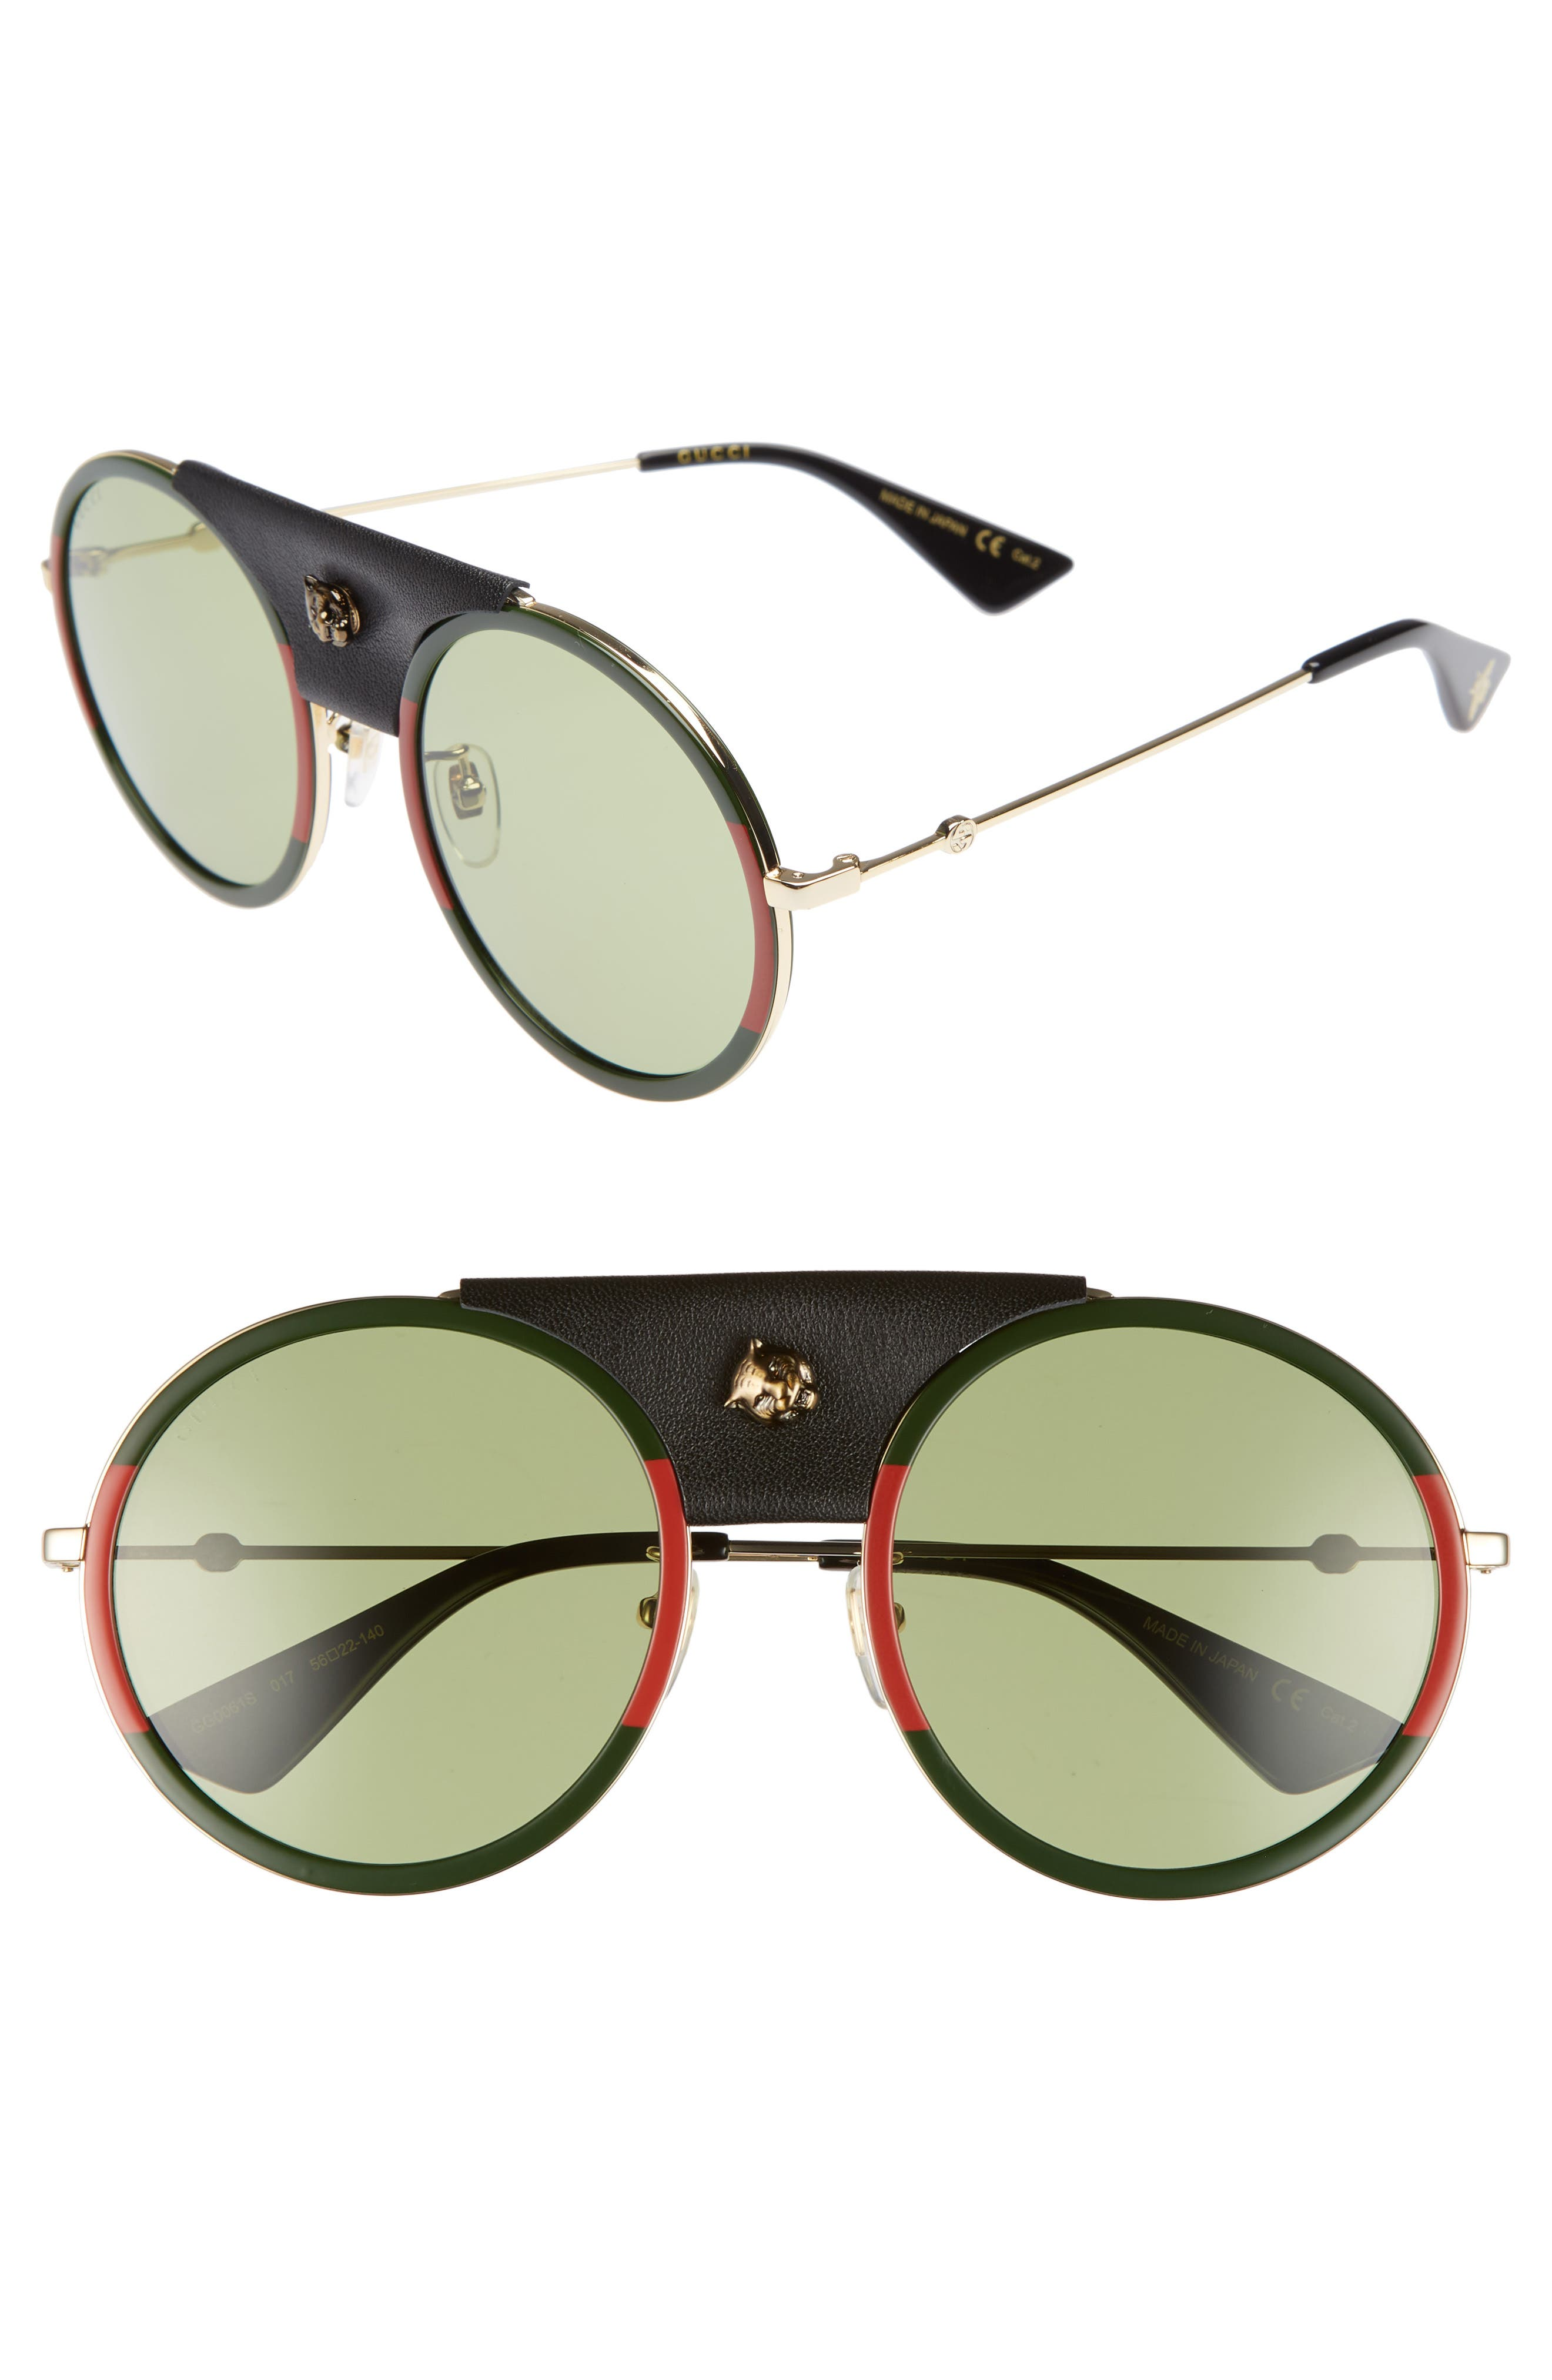 7143adcf55 Gucci Web Block 56Mm Round Sunglasses With Leather Wrap - Gold  Black